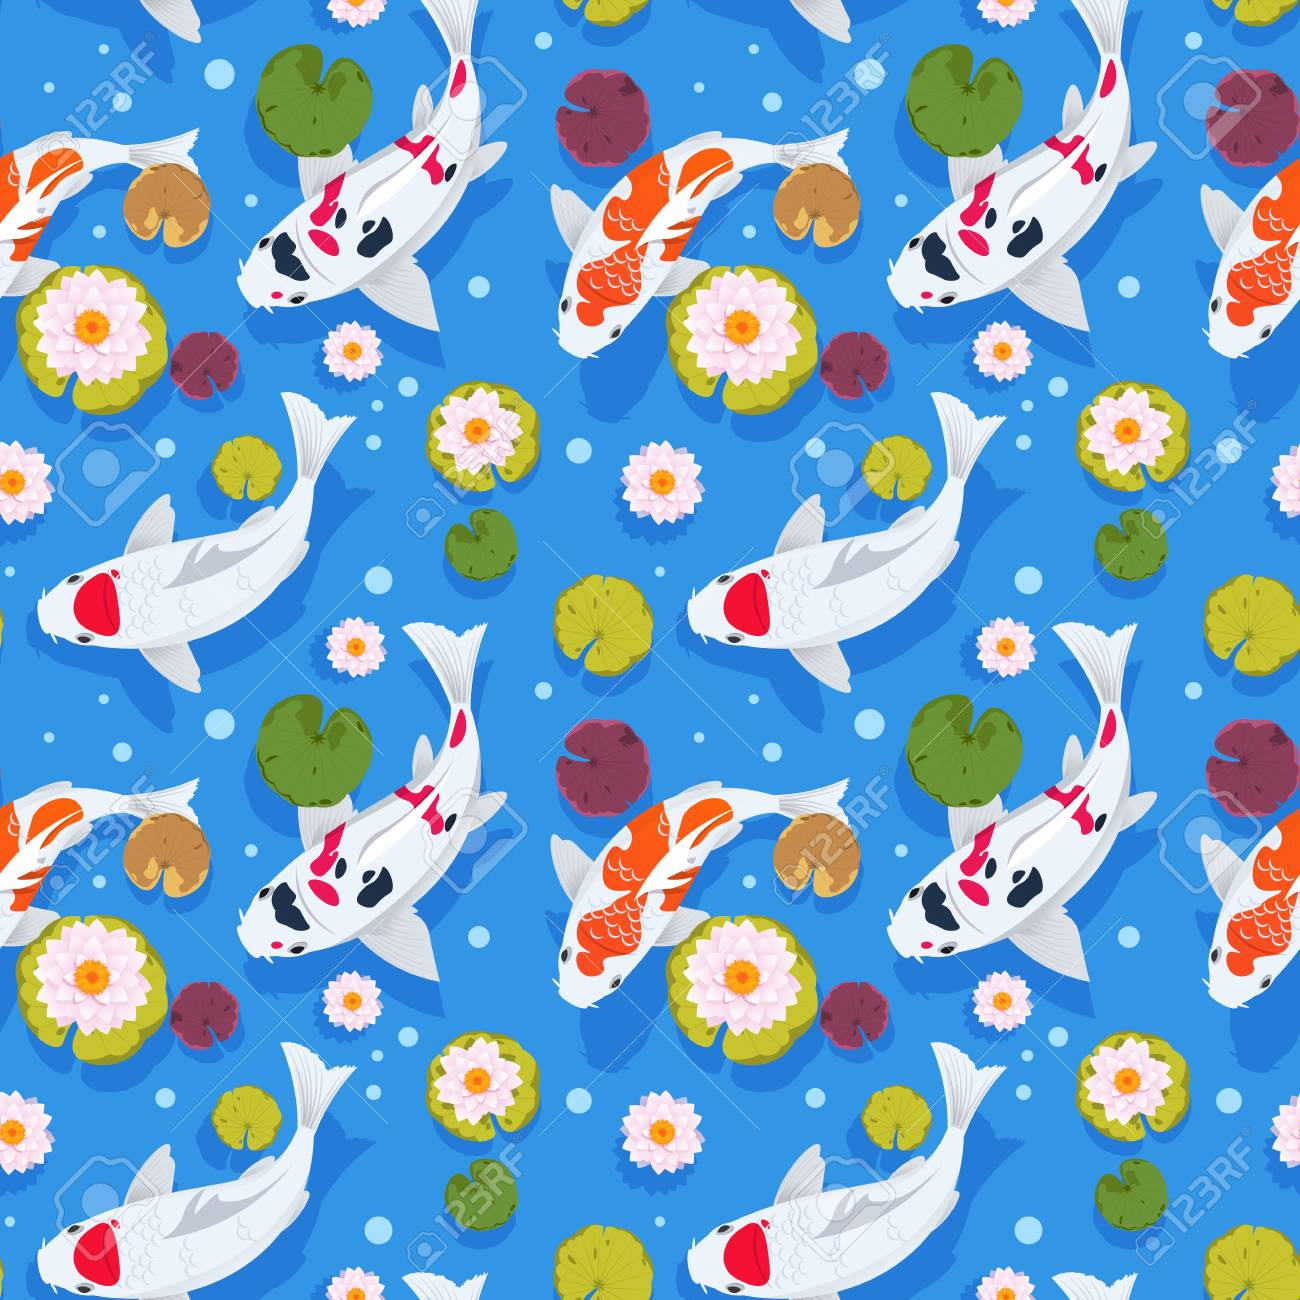 Koi fish seamless pattern. Japanese carp in china garden. Oriental nature background. Asian